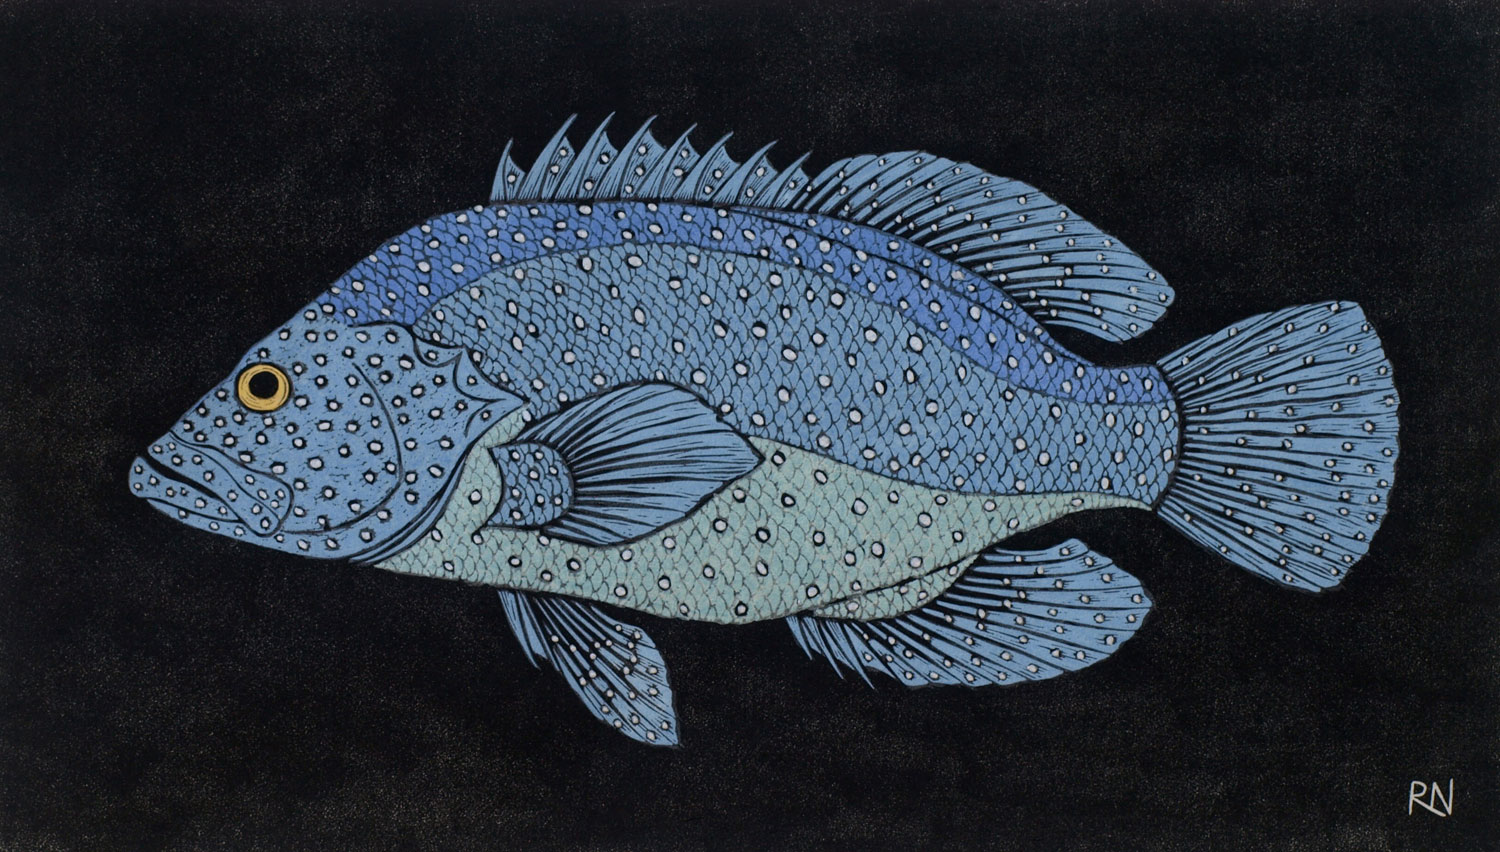 SHOAL 1  30 X 52.5 CM EDITION OF 50  HAND COLOURED LINOCUT ON HANDMADE JAPANESE PAPER  $850